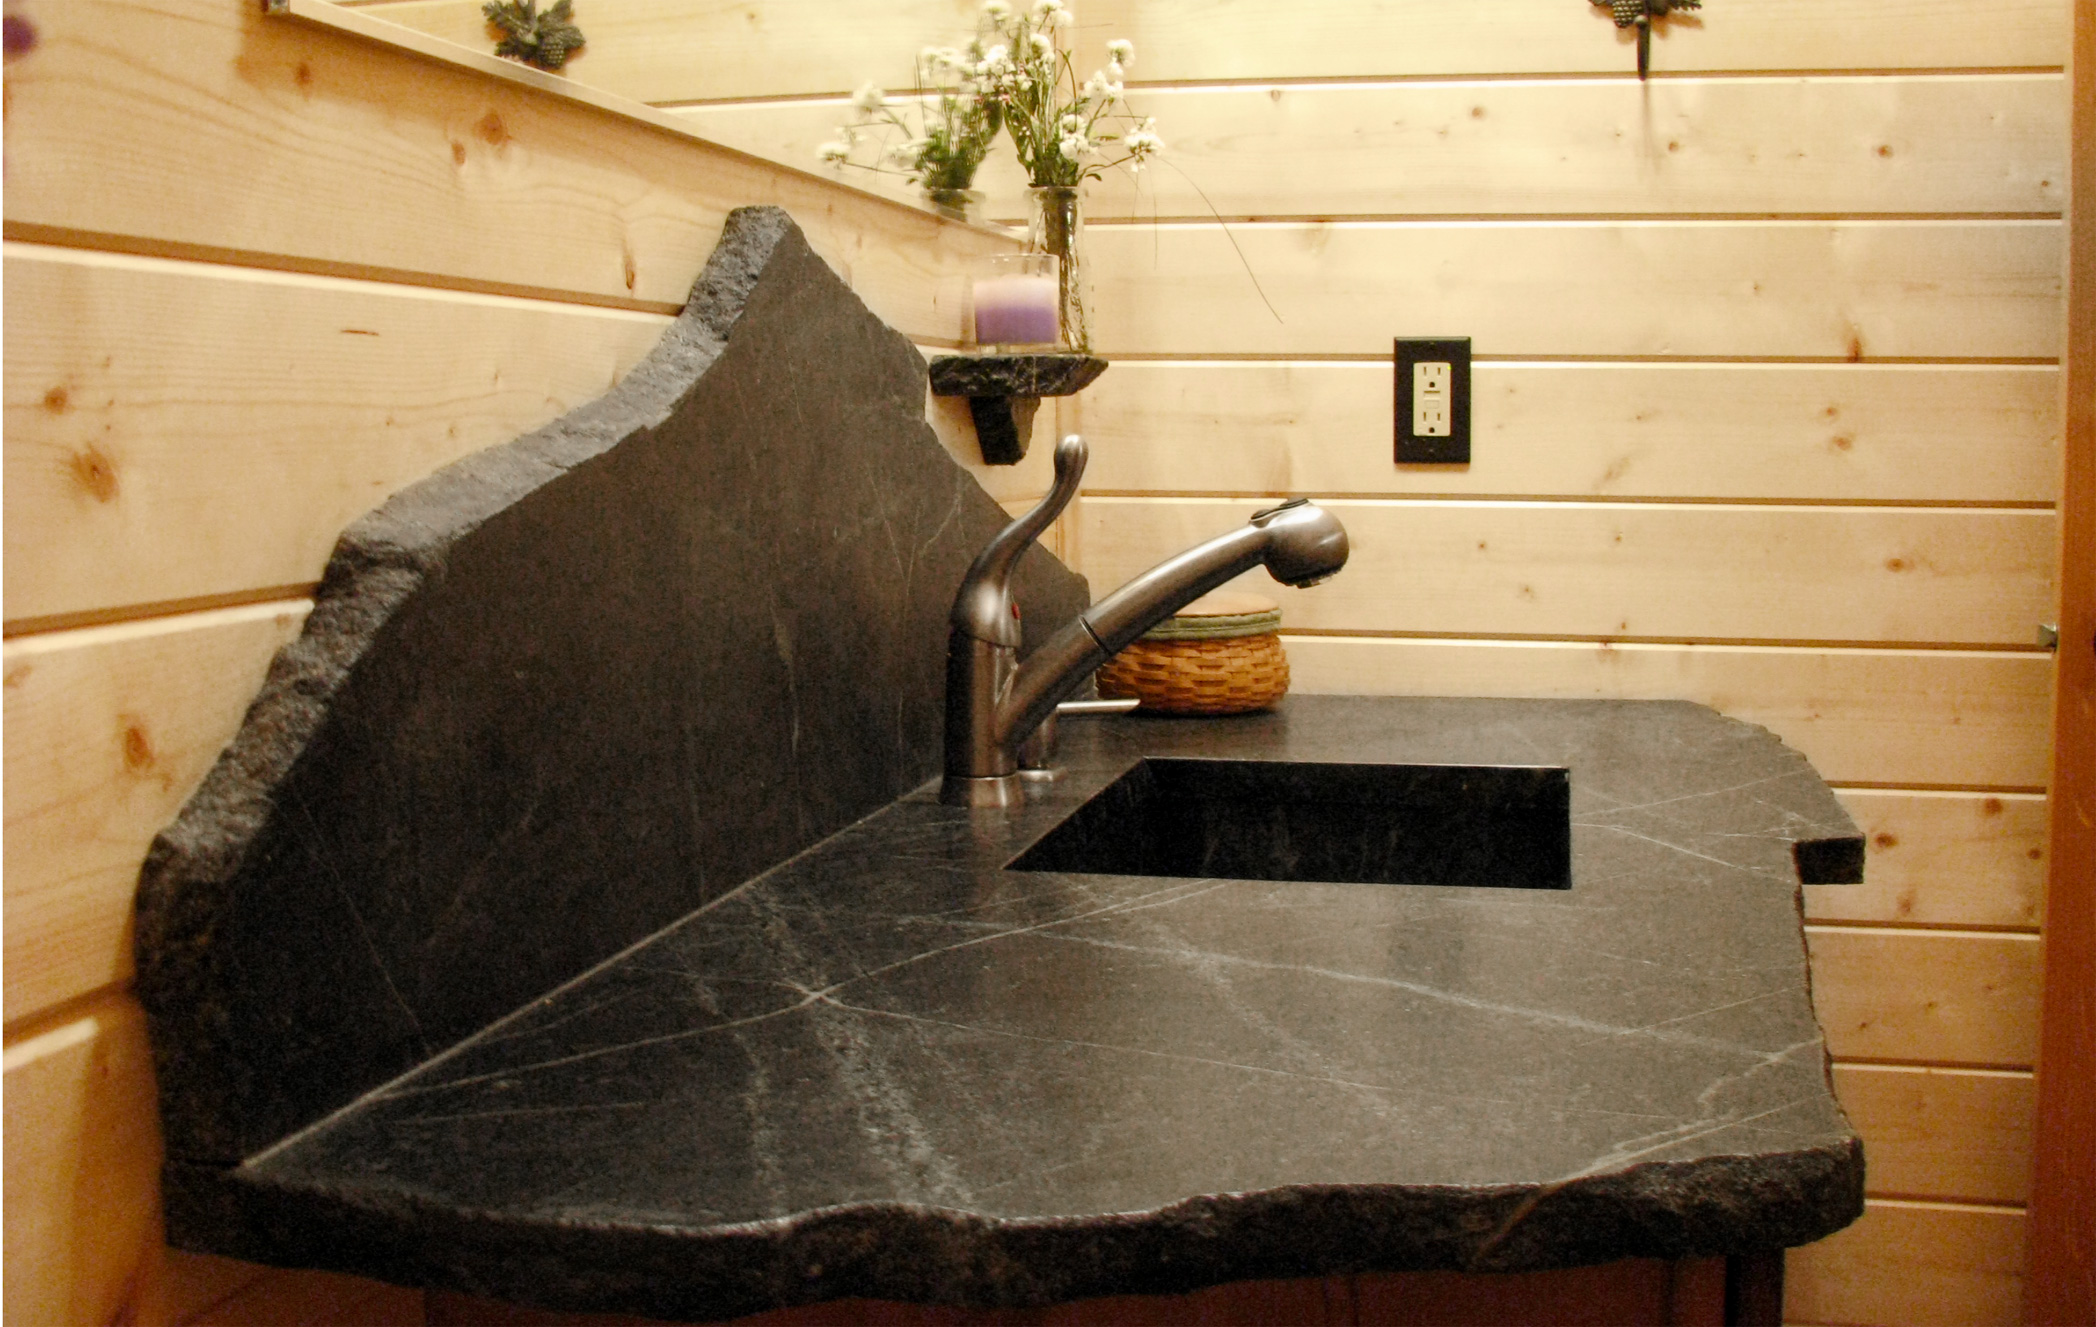 Soapstone Countertops Pros And Cons : Soapstone countertops cost installed plus pros and cons